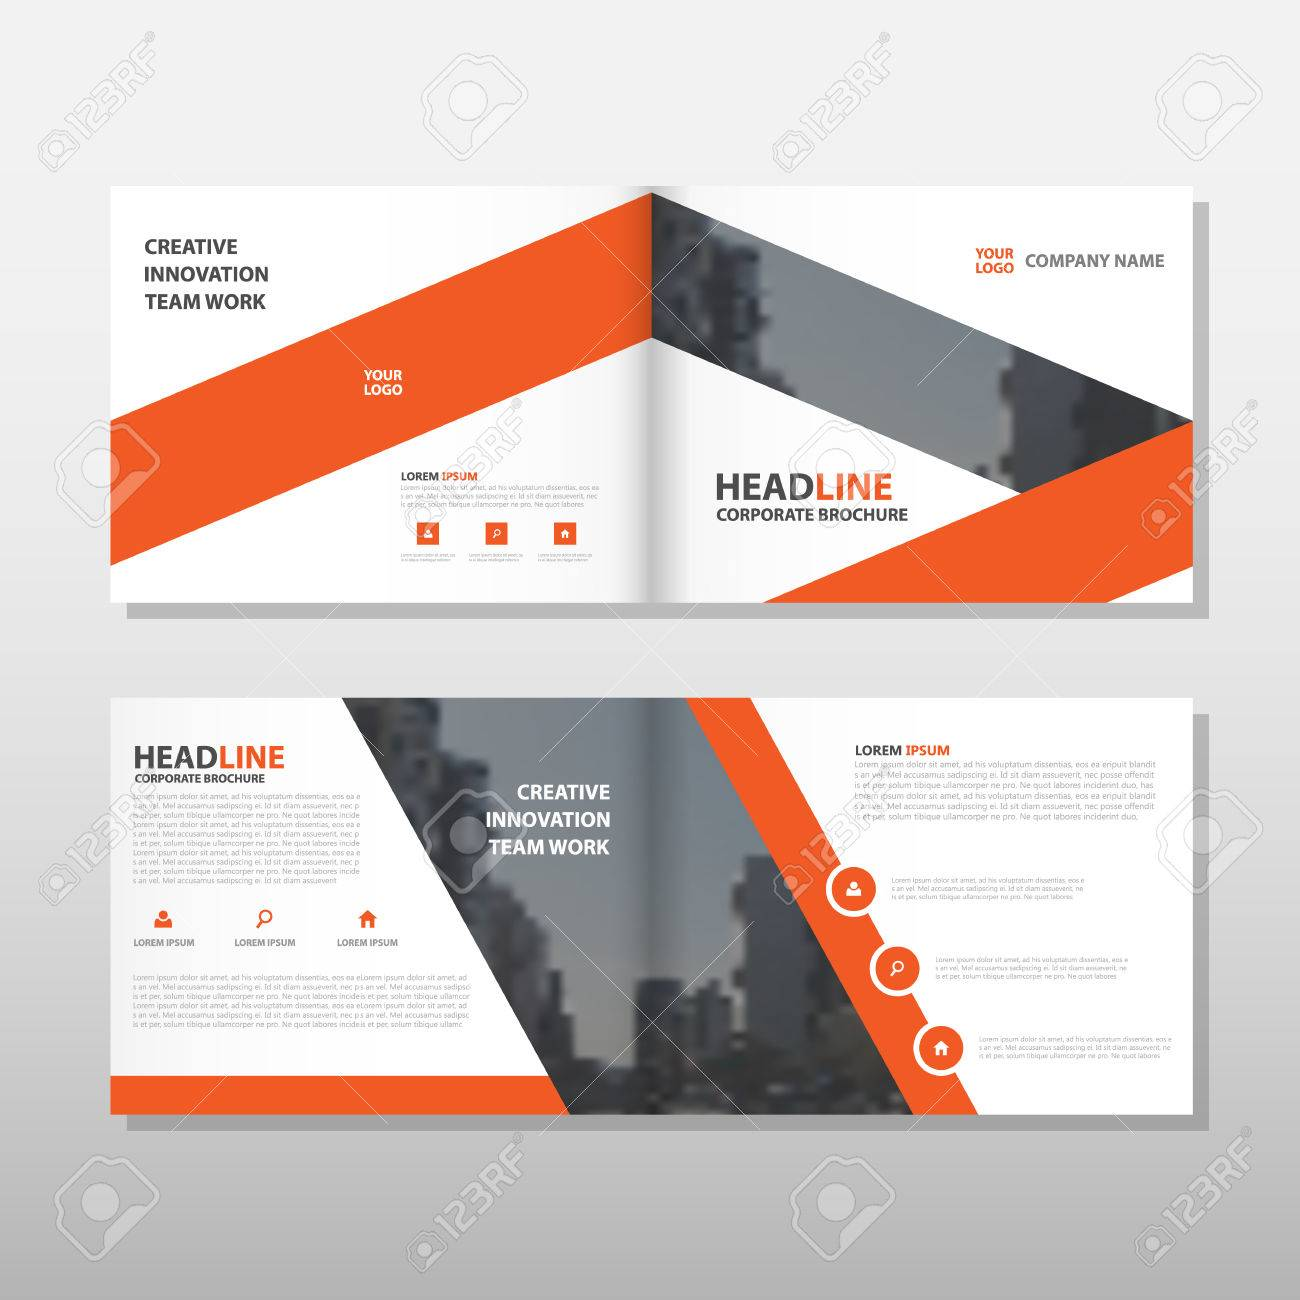 Orange Brochure Leaflet Flyer Annual Report Template Design